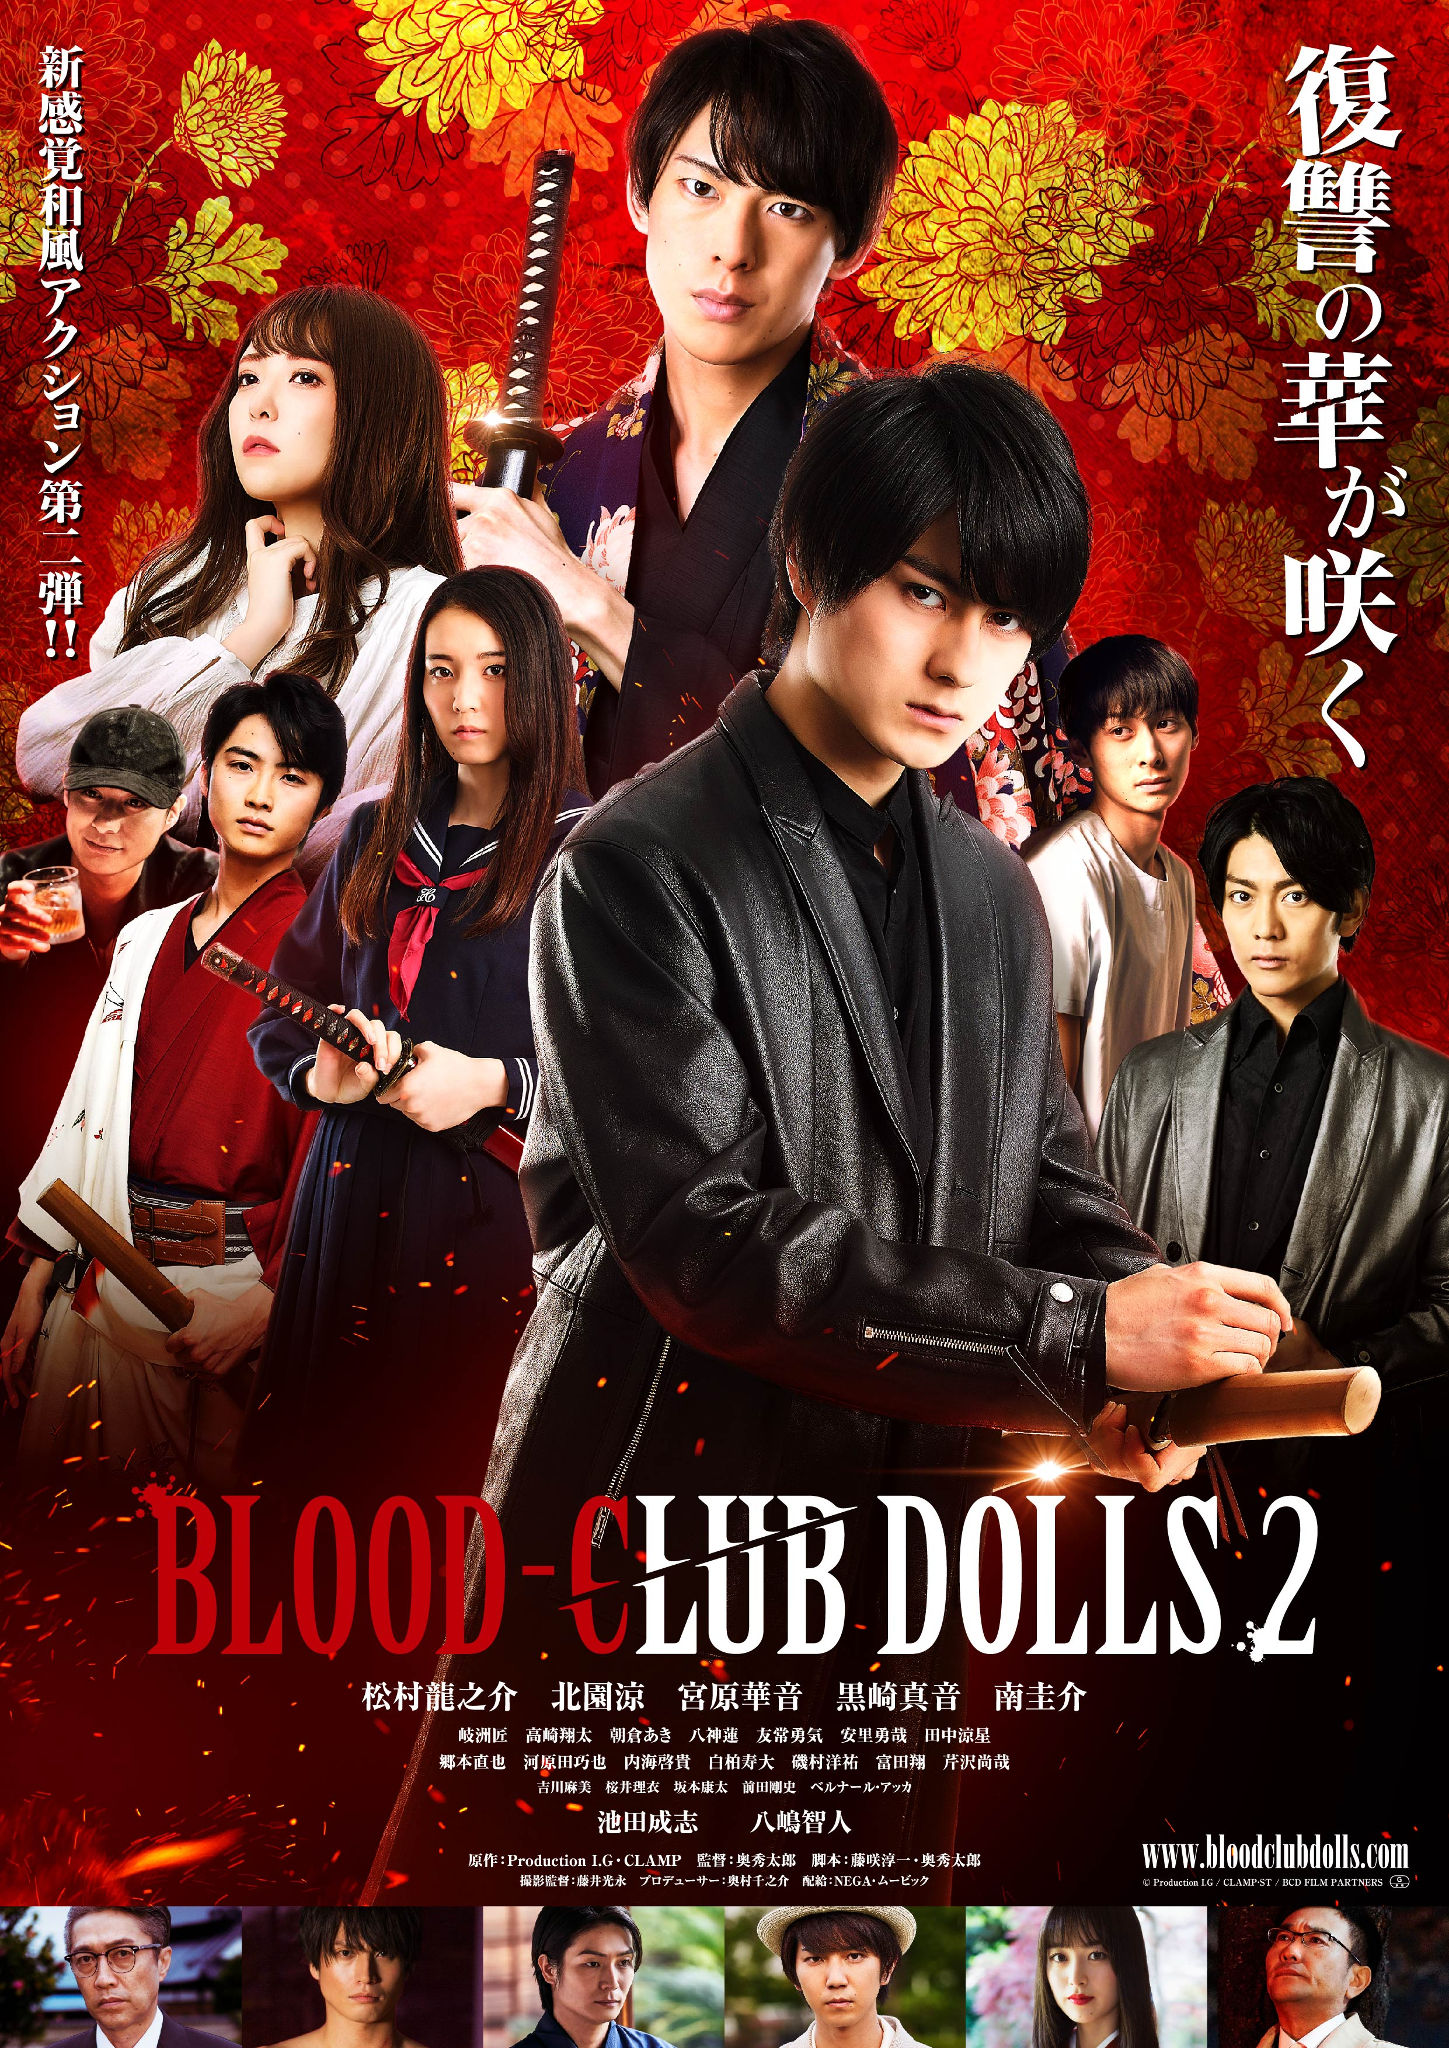 映画『BLOOD-CLUB DOLLS 2』